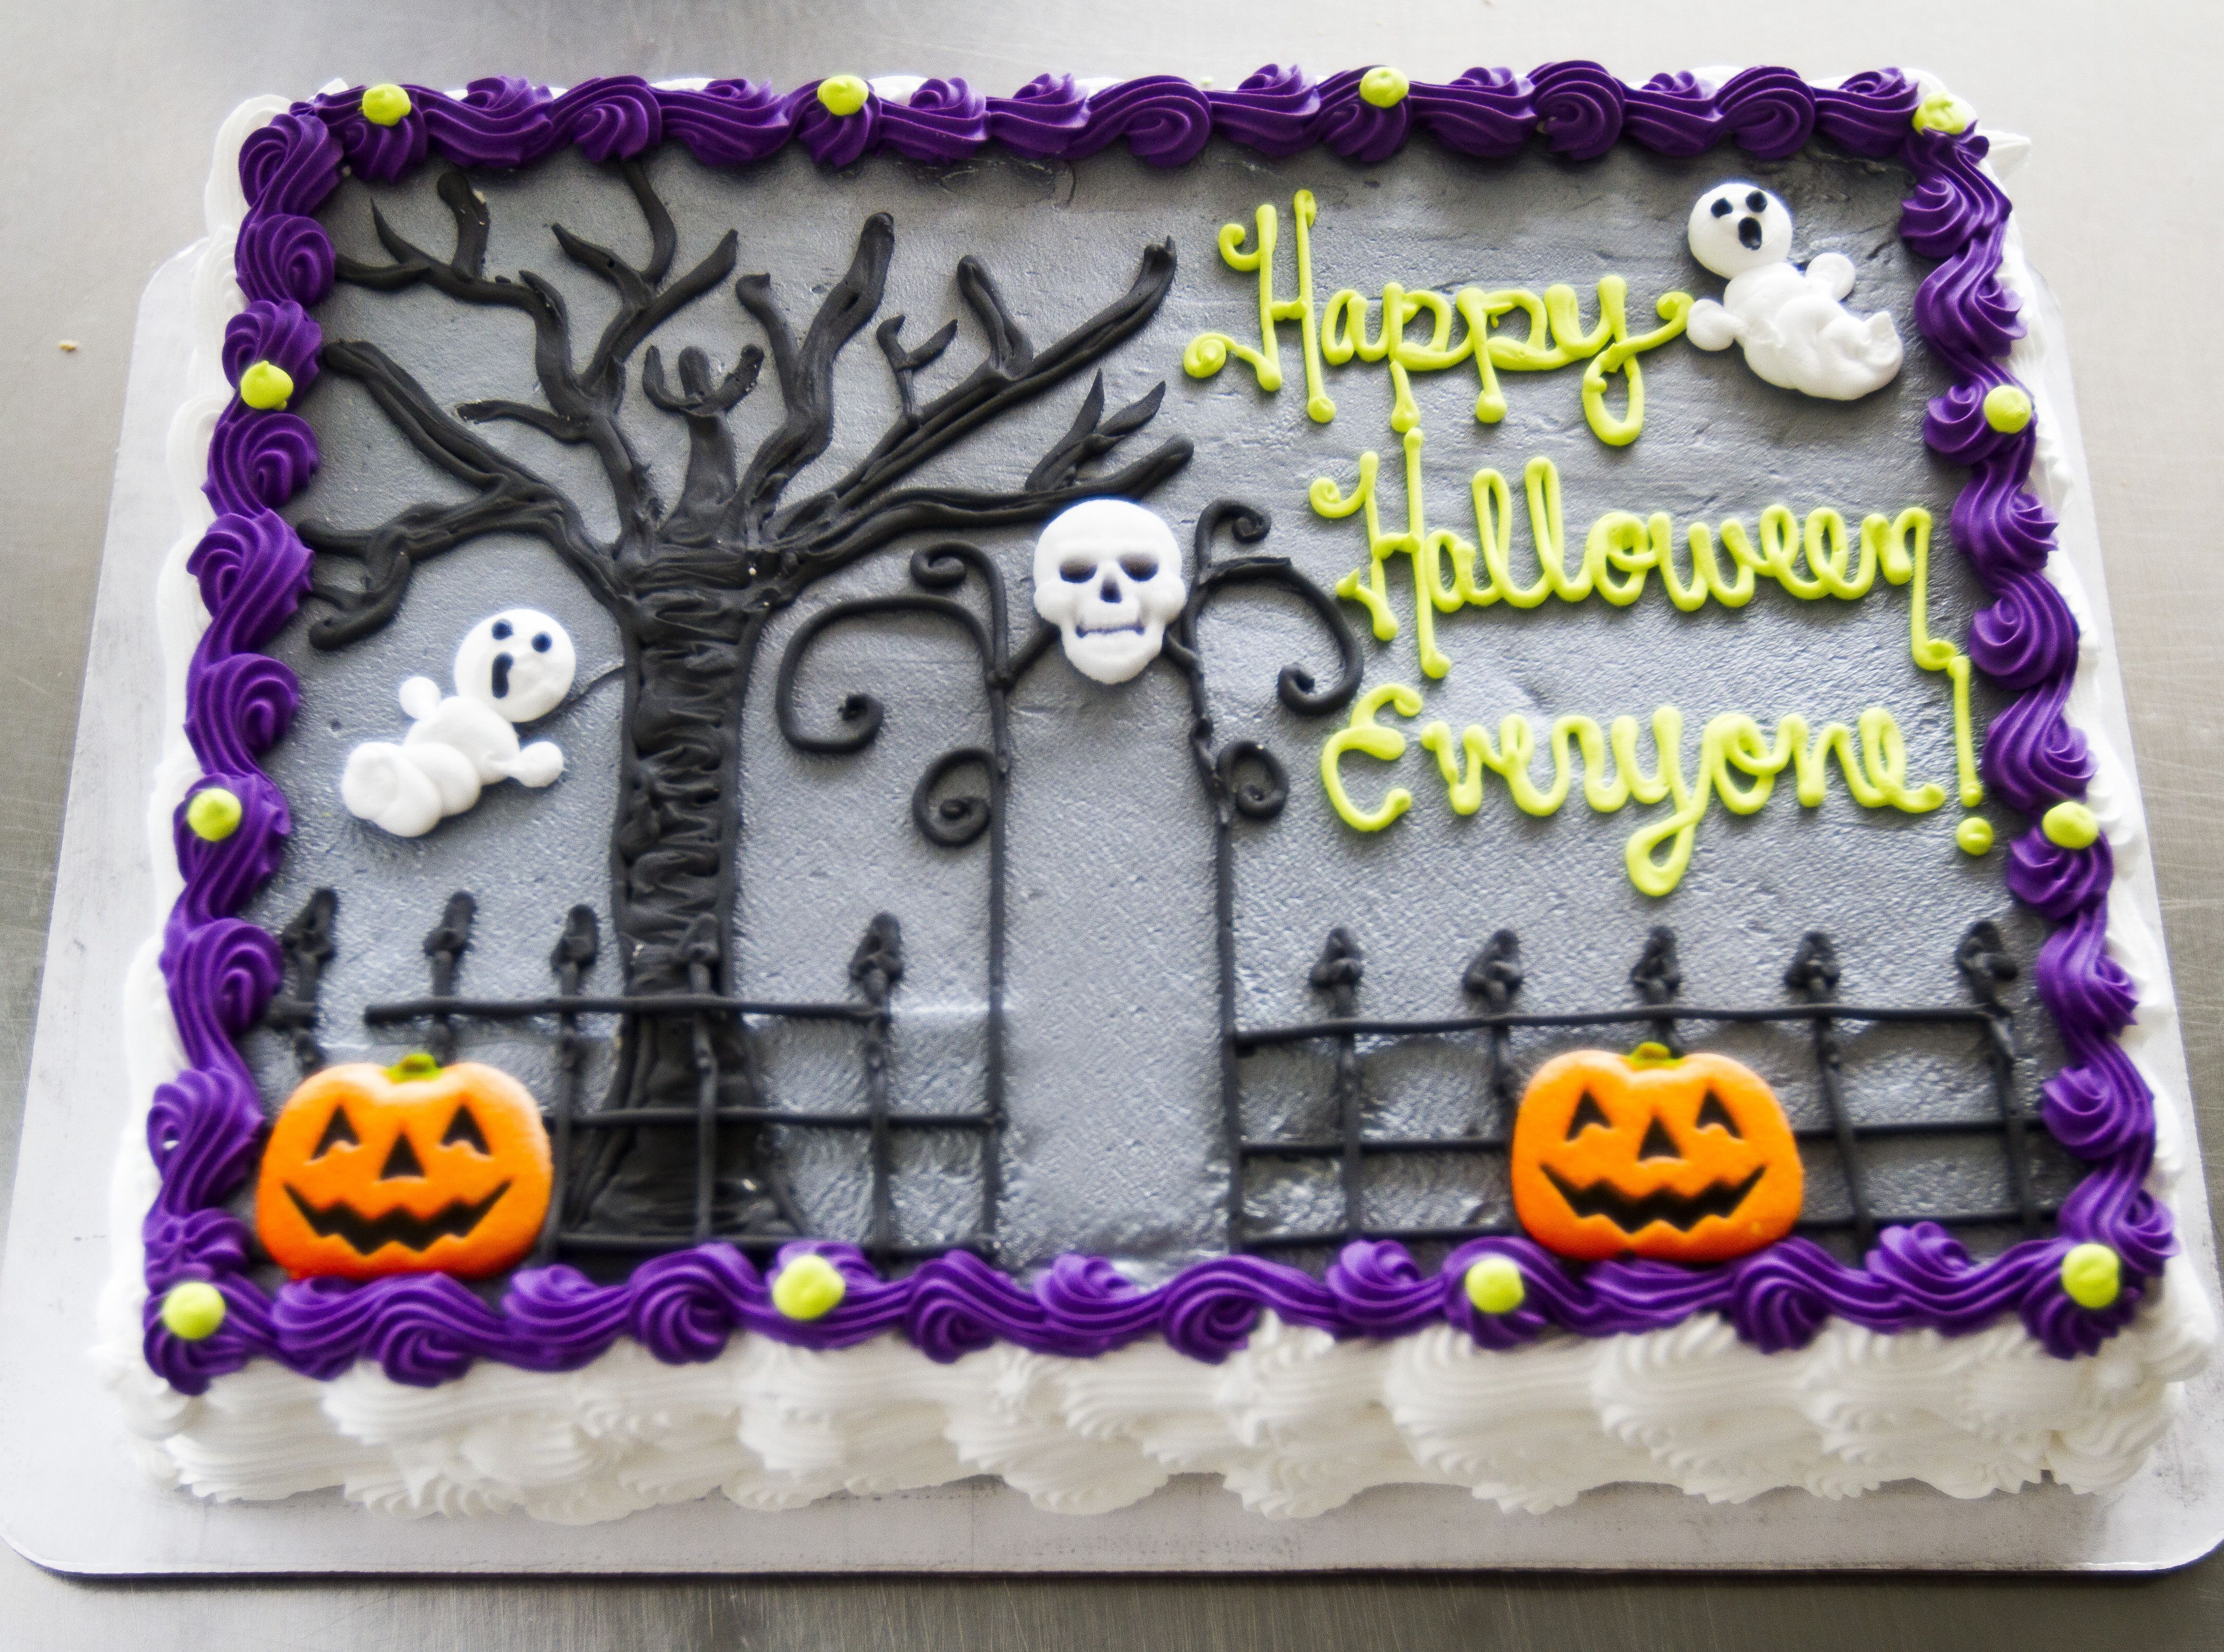 Stupendous Bakery Cakes Halloween Cake Decorating Birthday Sheet Cakes Funny Birthday Cards Online Barepcheapnameinfo